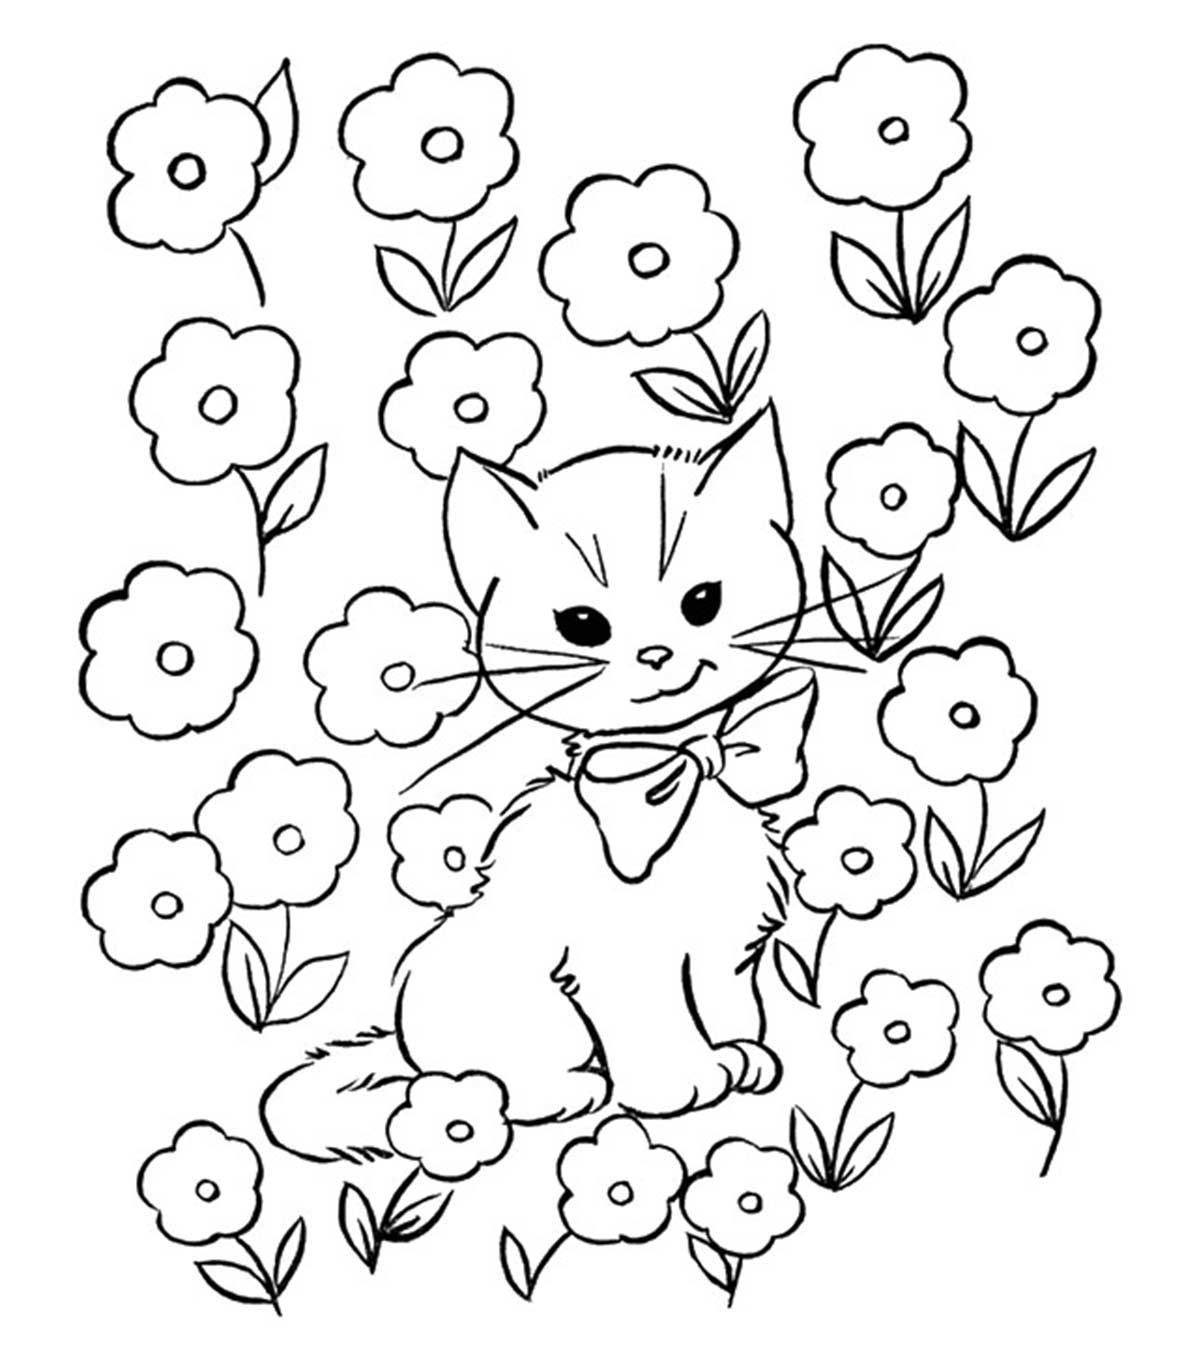 Cute Cats Coloring Pages - Coloring Home